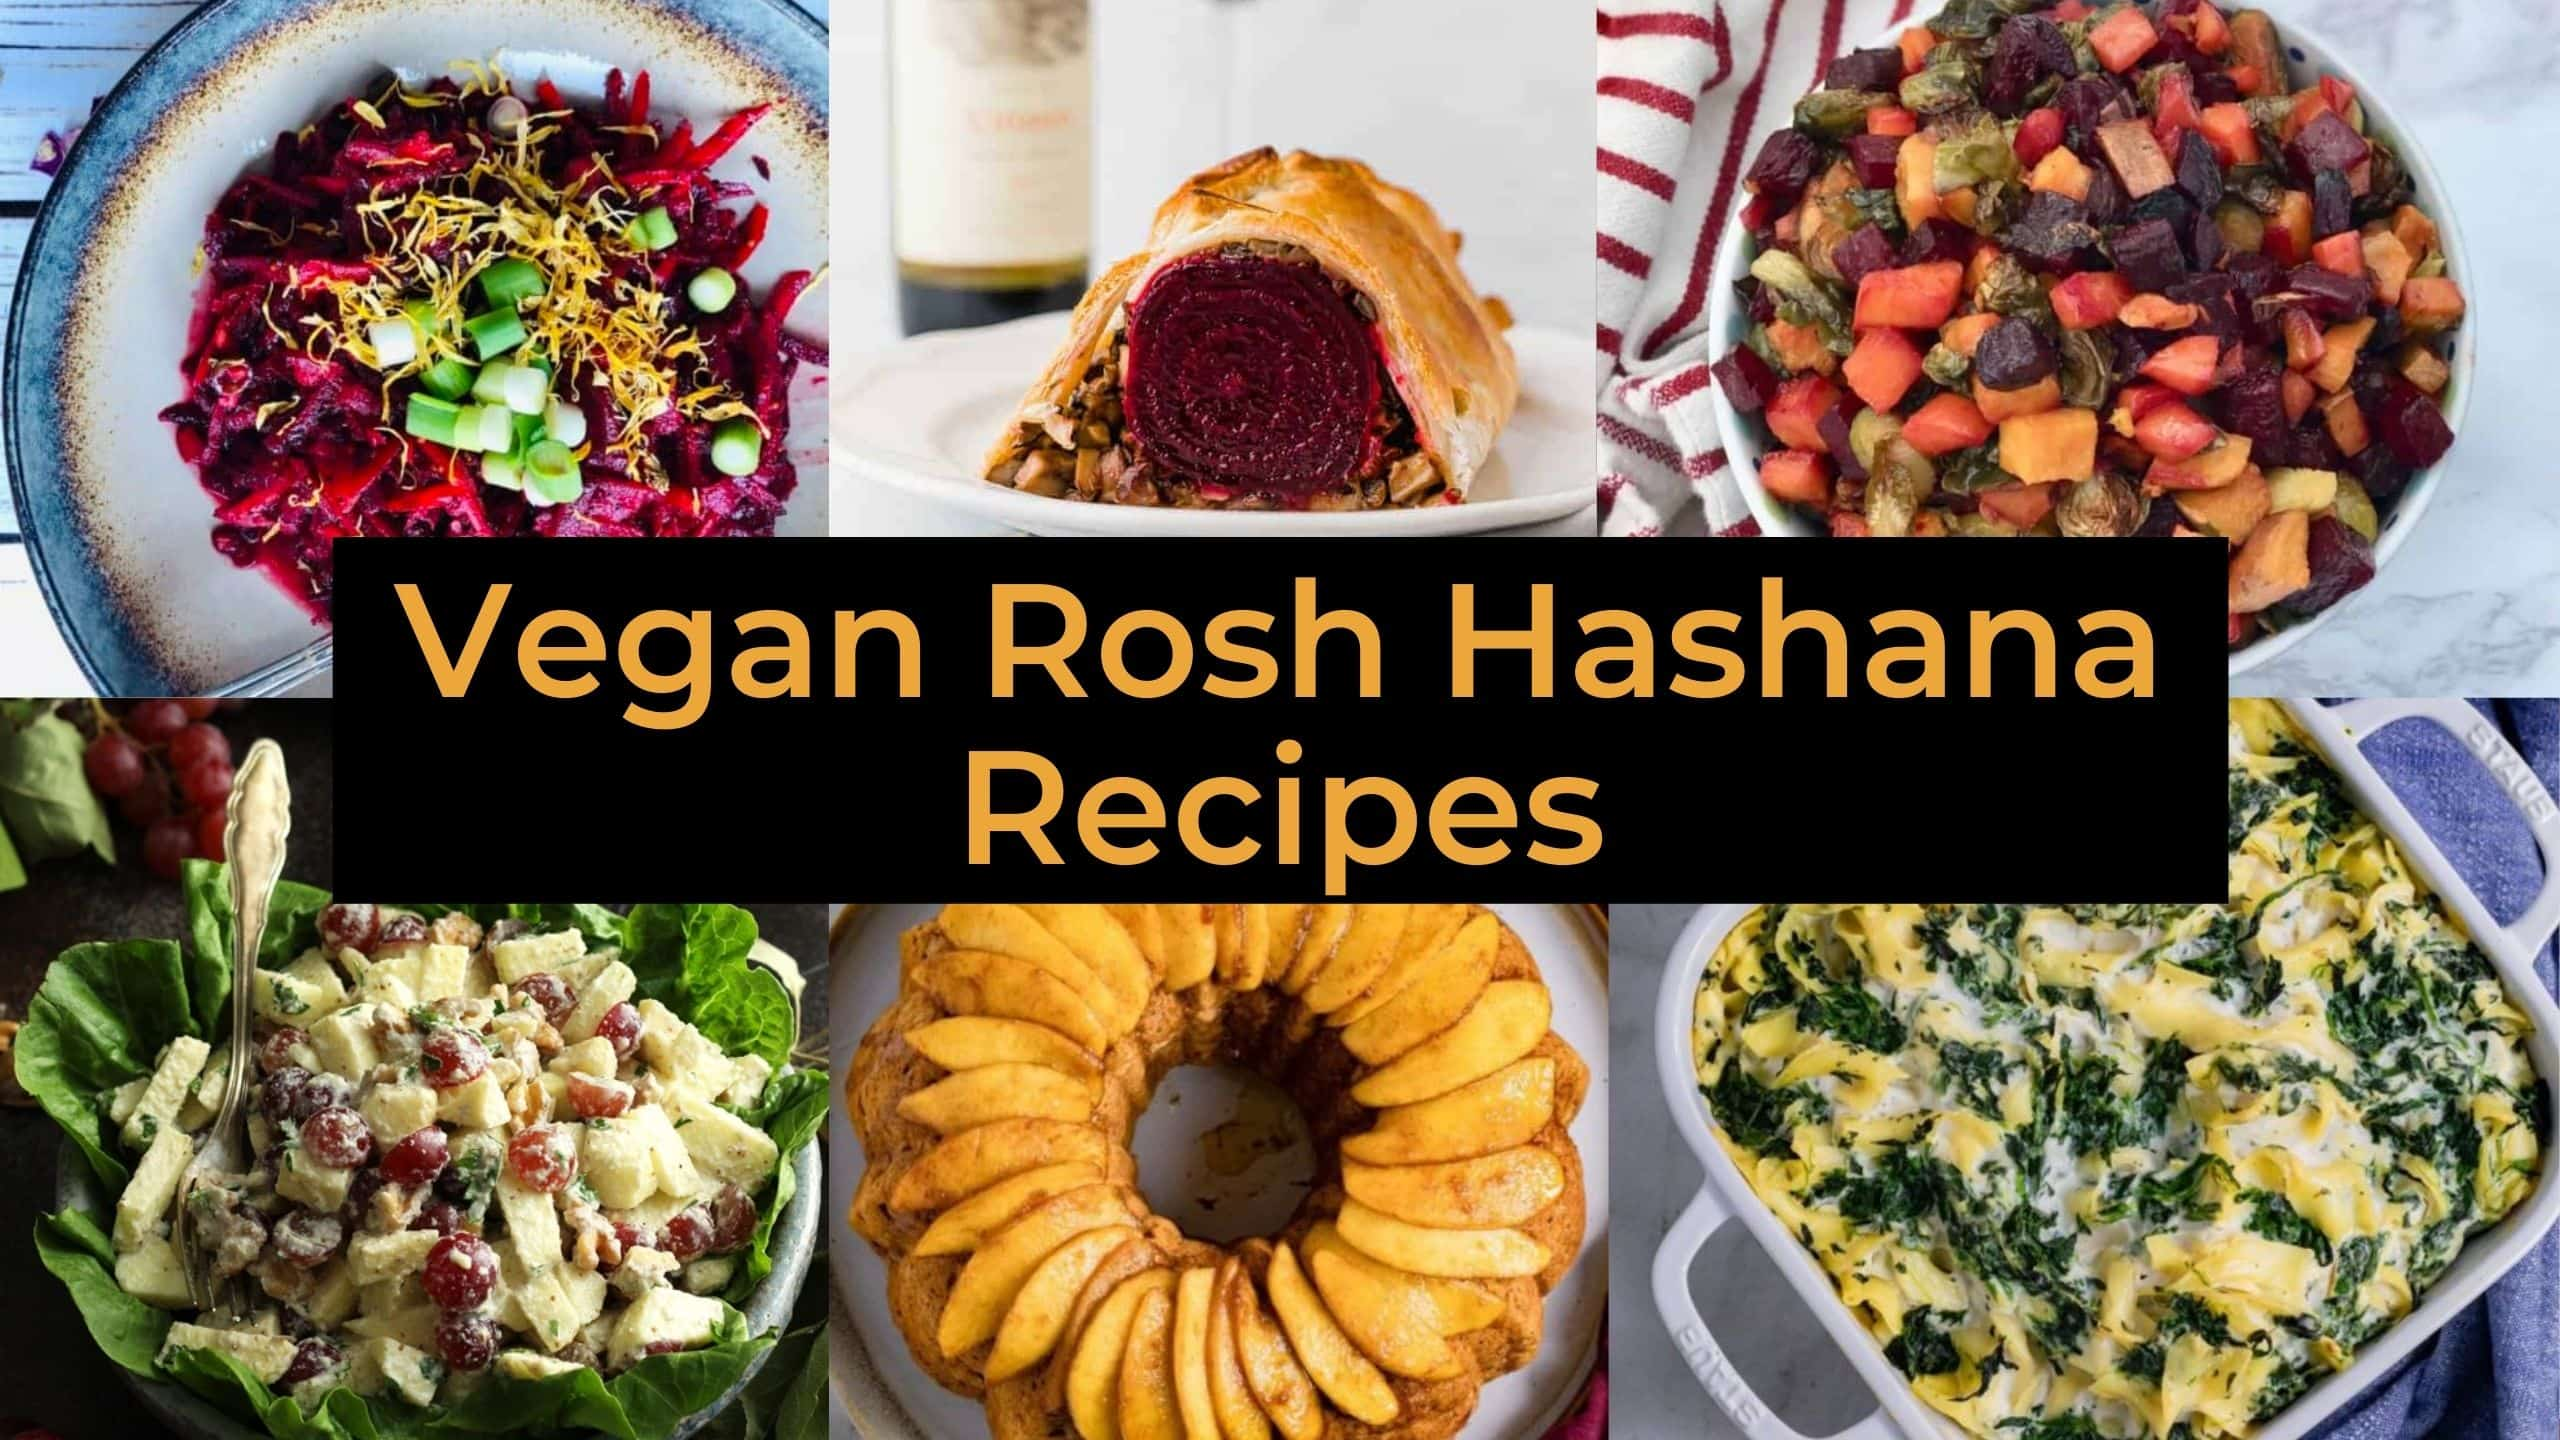 vegan rosh hashana recipes